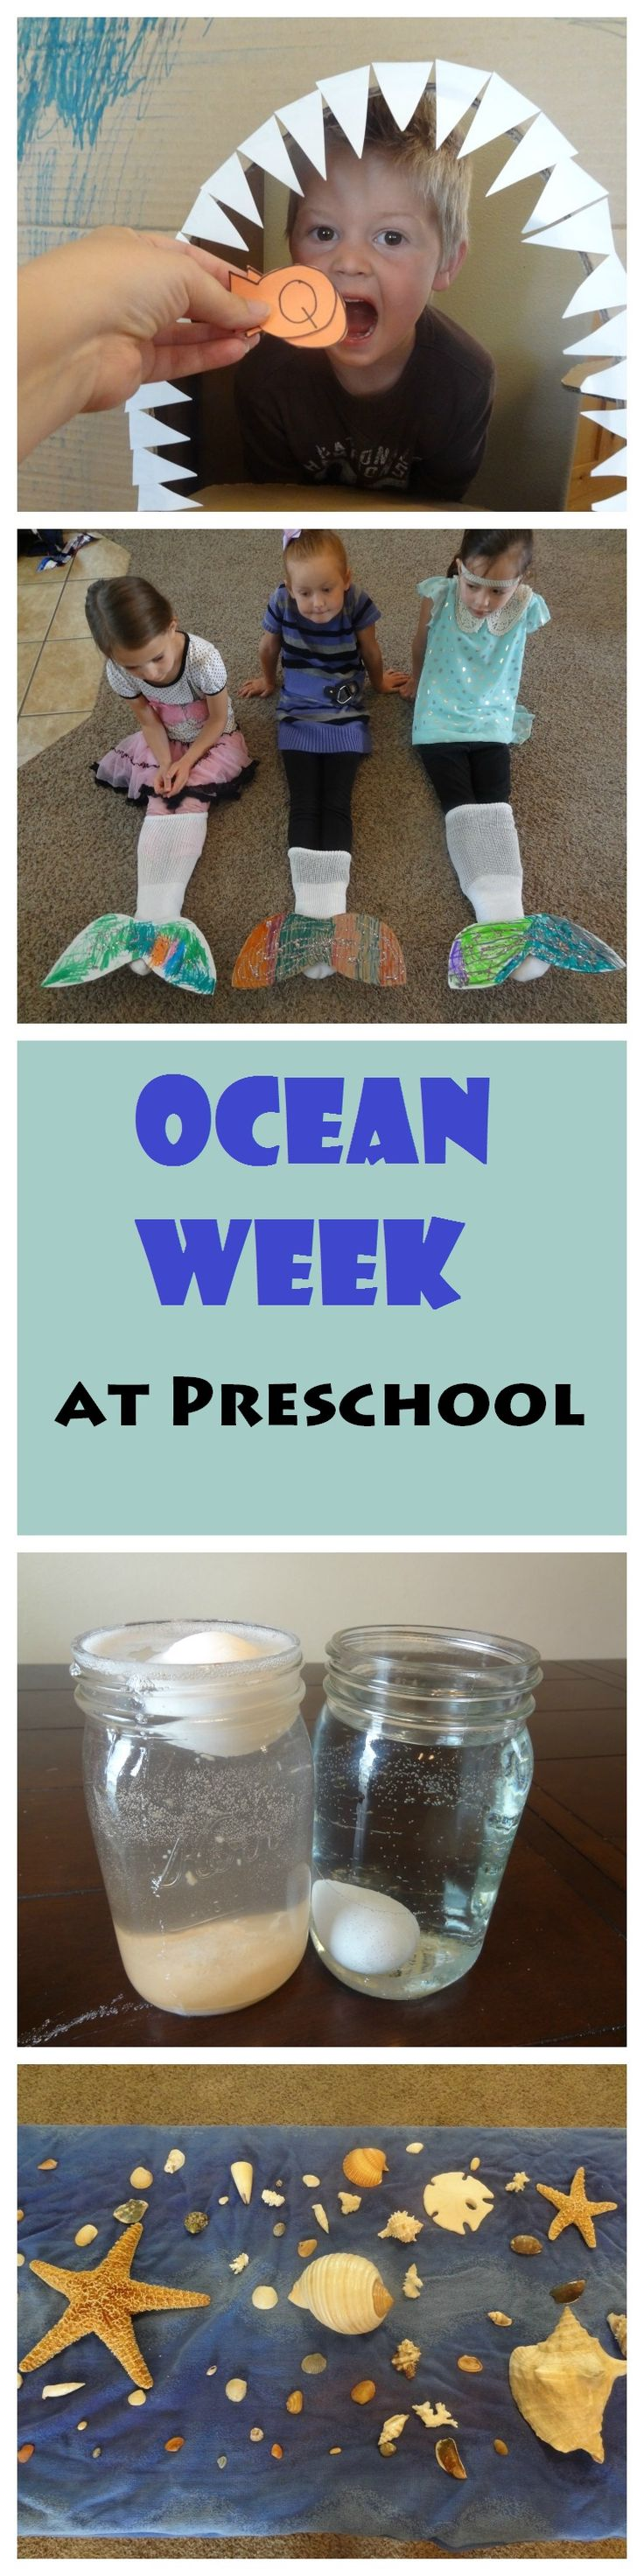 Ocean Week at Preschool. Mermaid Tails, Shark Letter Review, Ocean in a Bottle, Salt Water Experiment, and more.